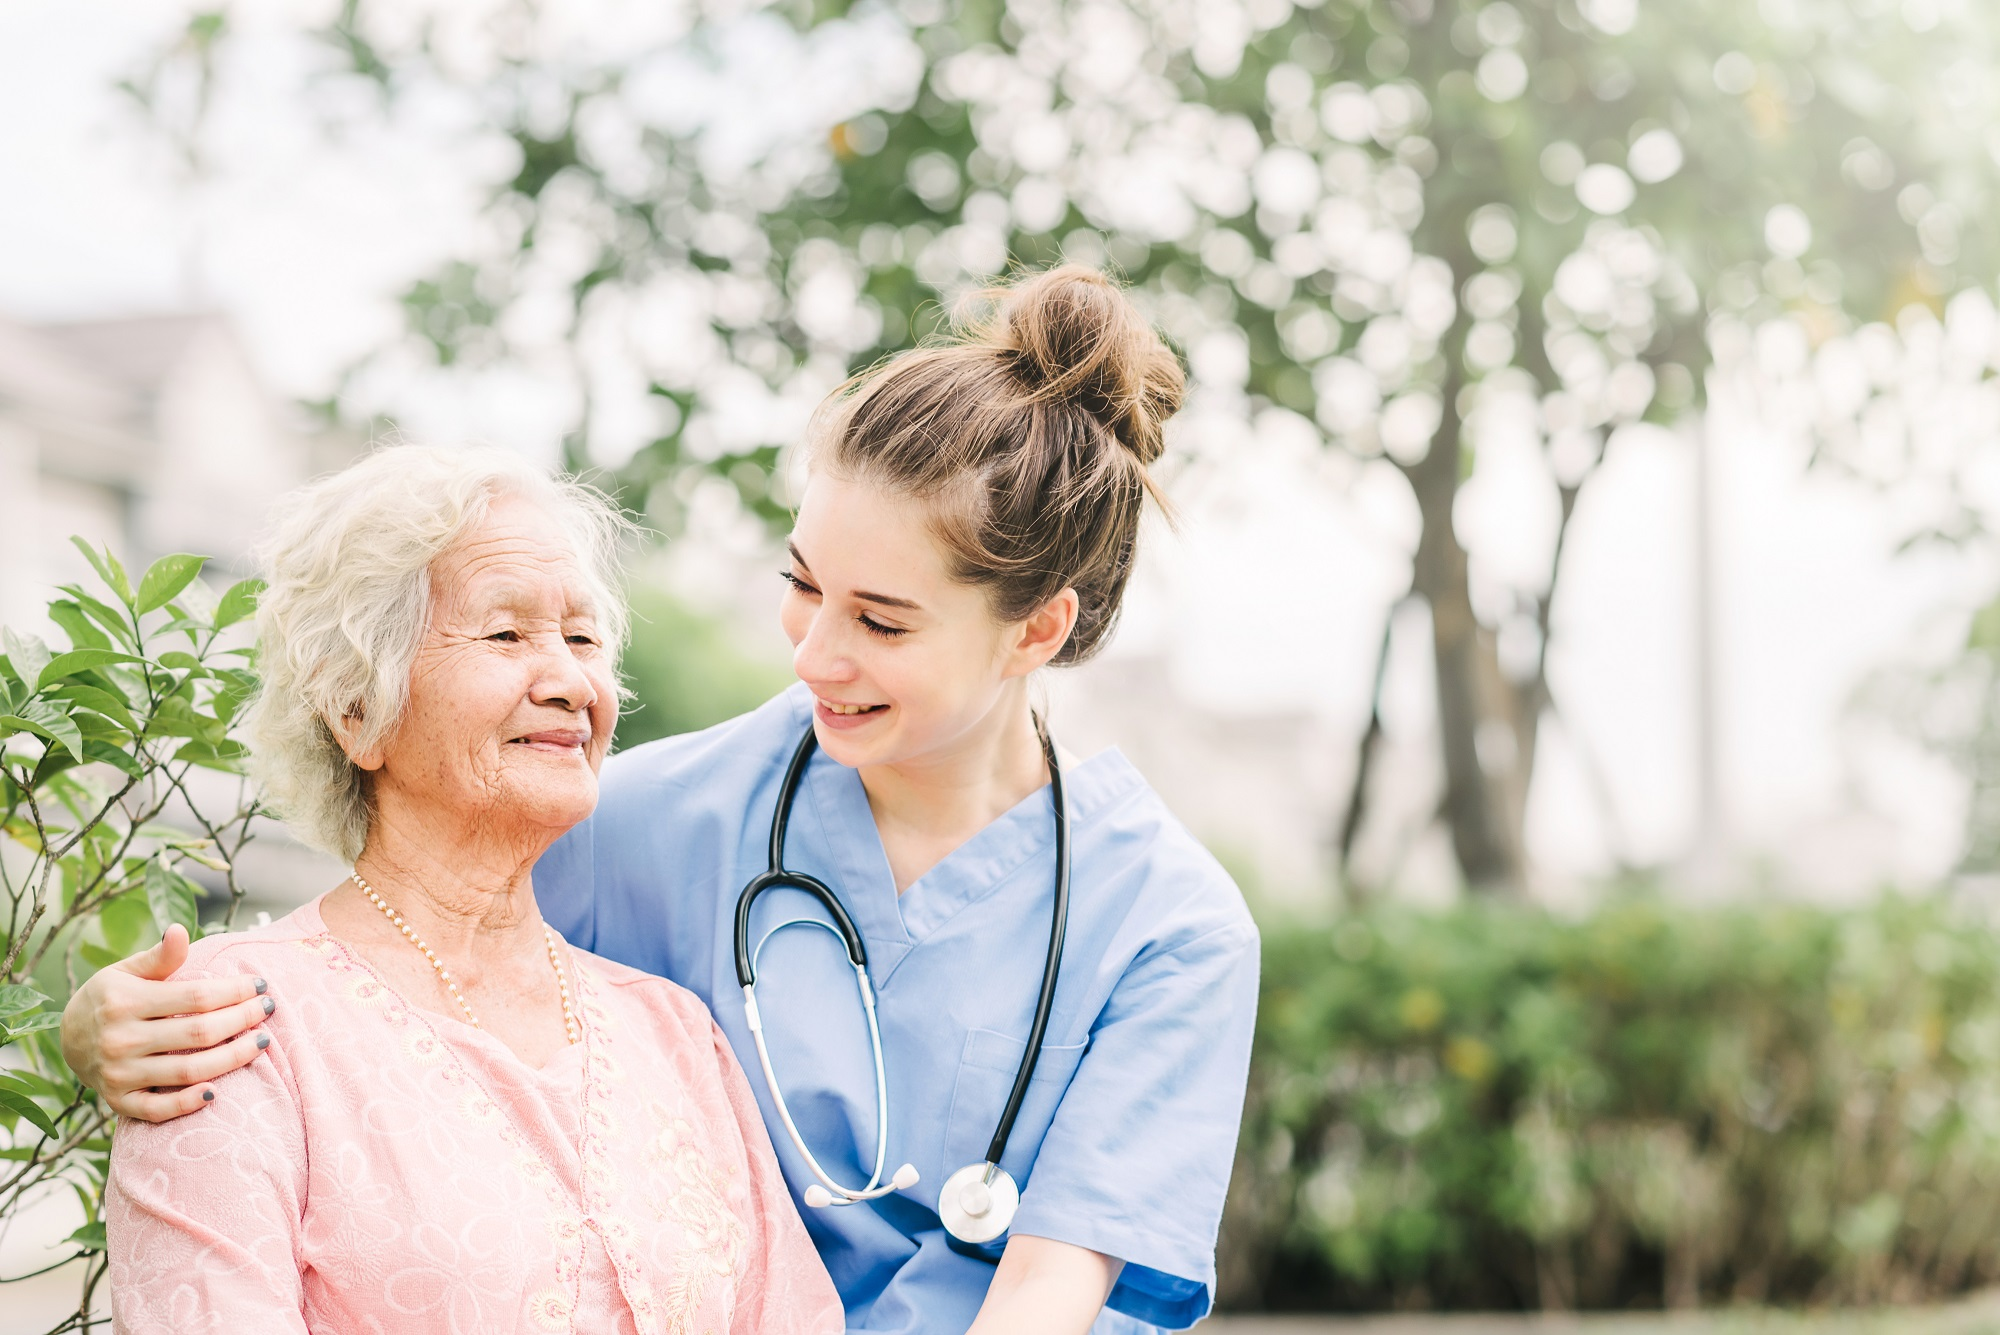 Person Centred Practice in Health and Social Care